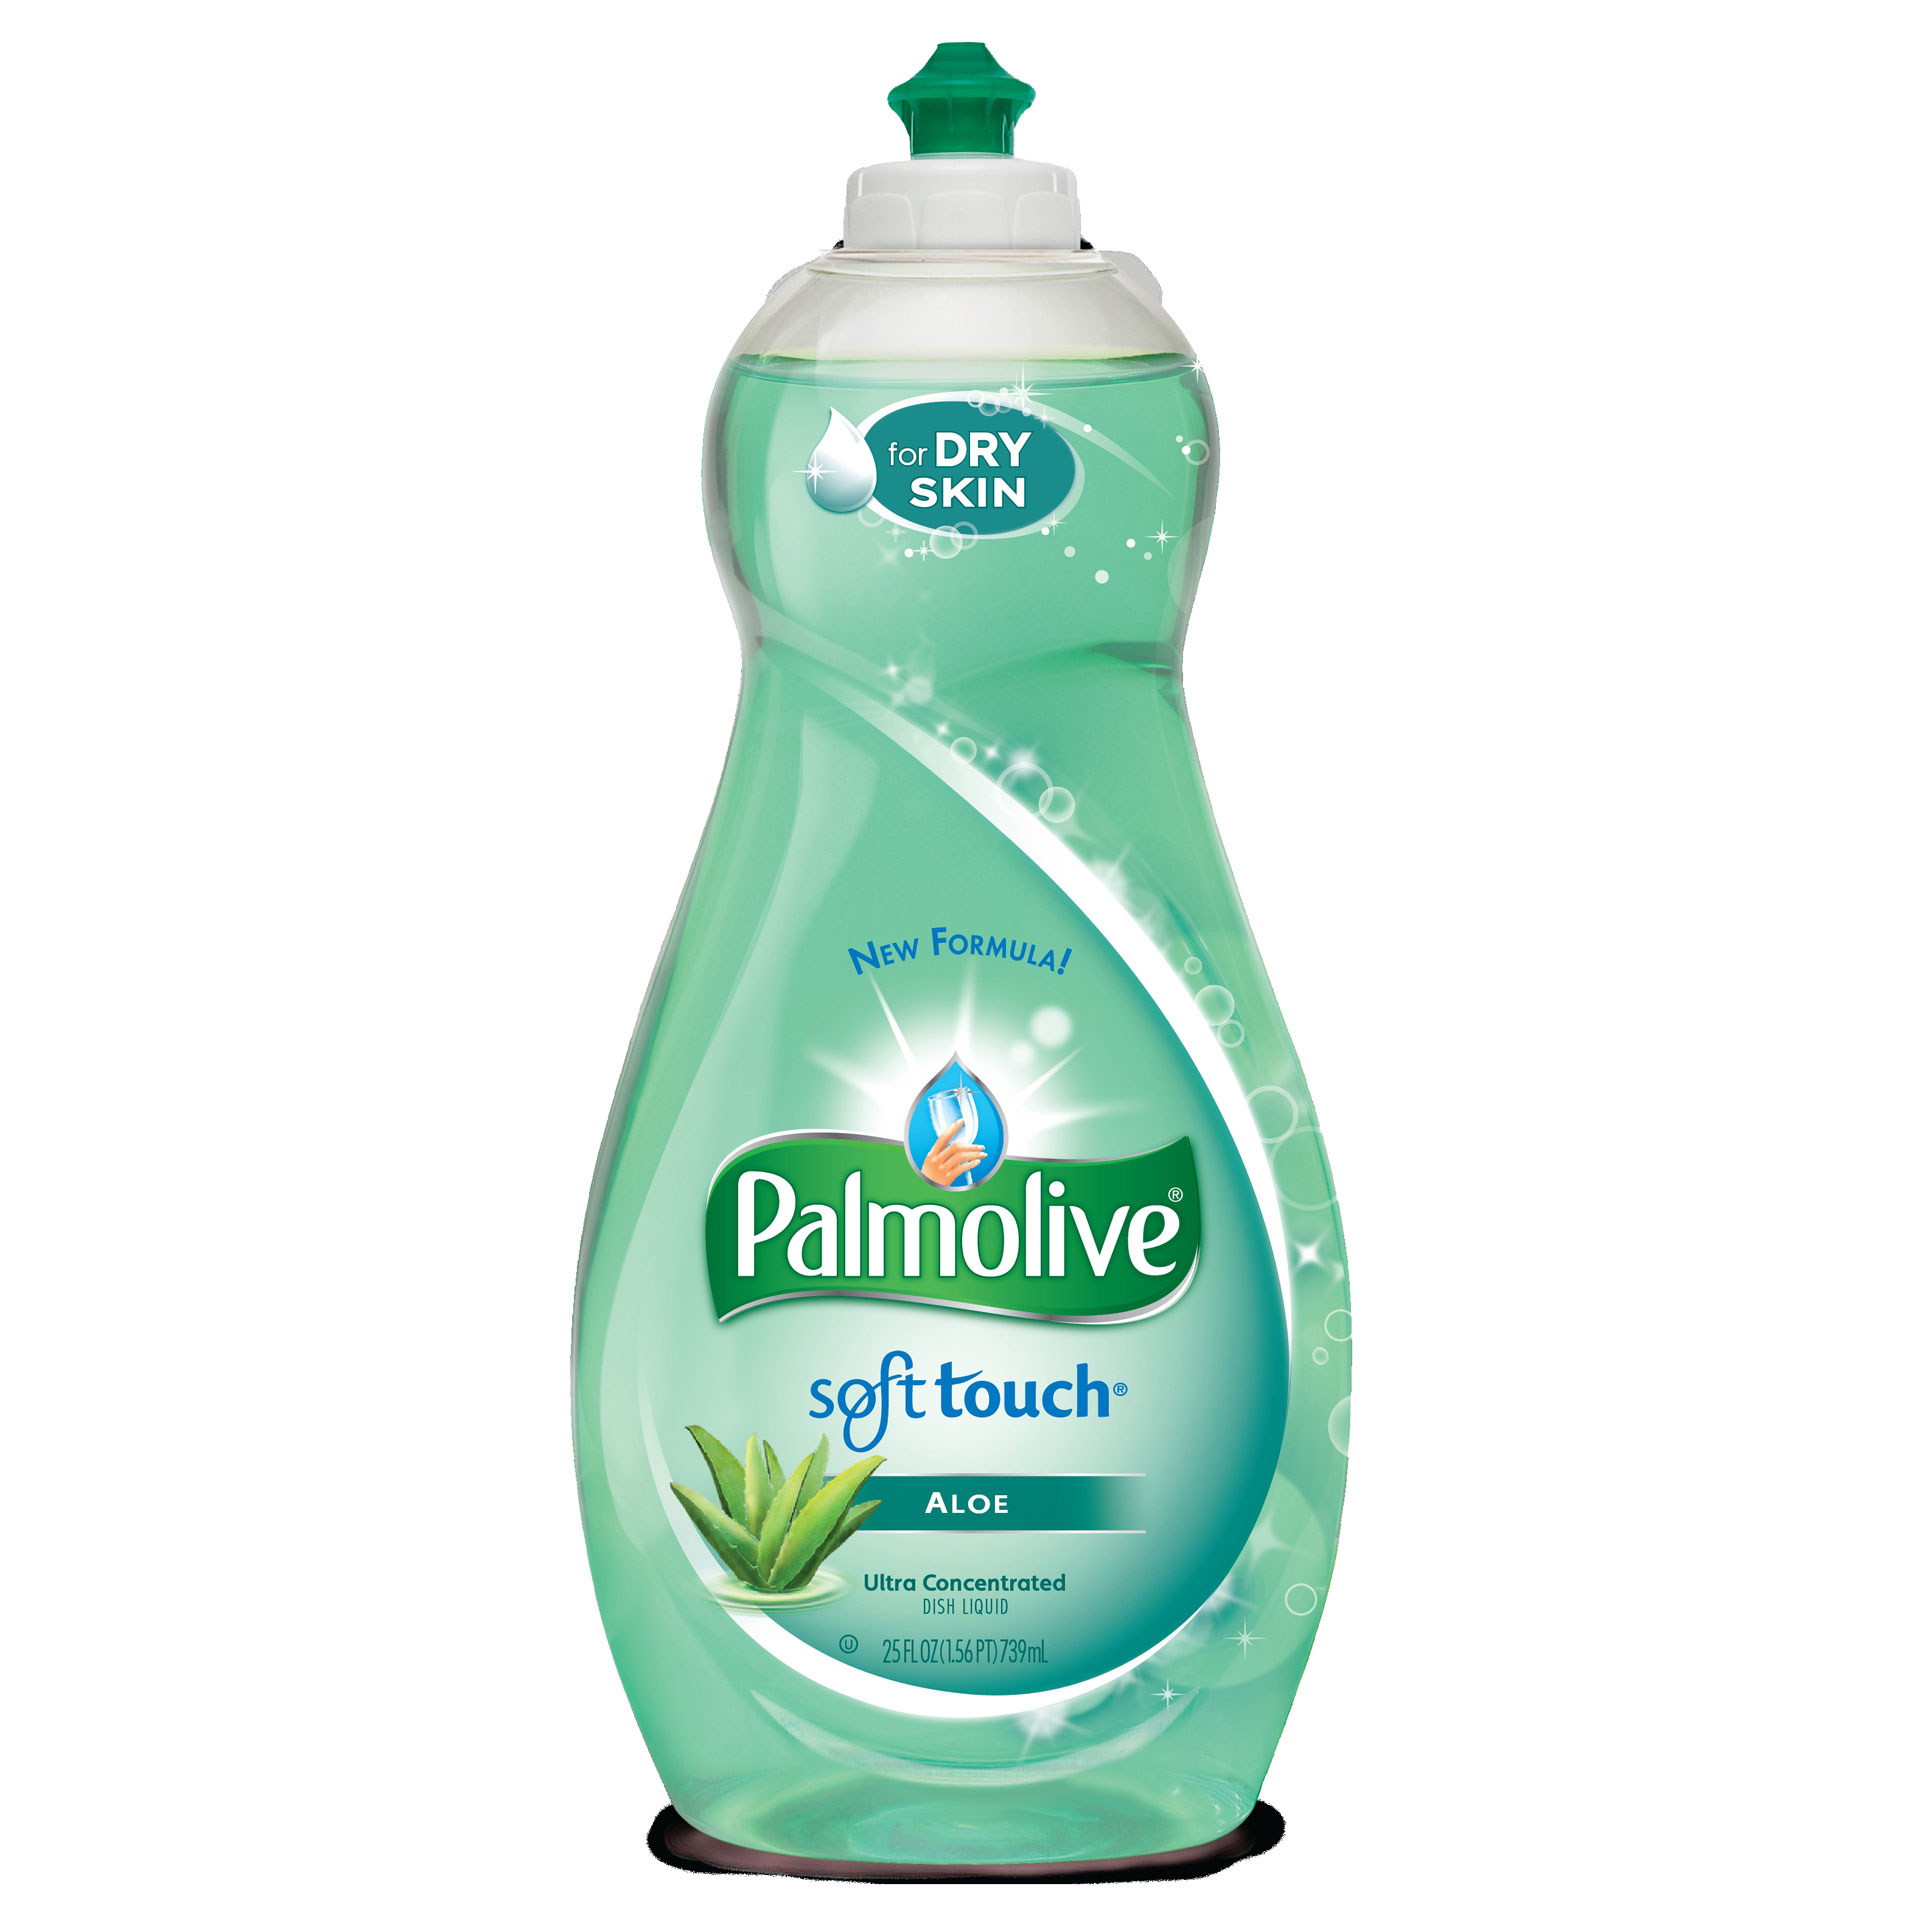 5500968e07606ghkpalmolivesofttouchaloes2jpg